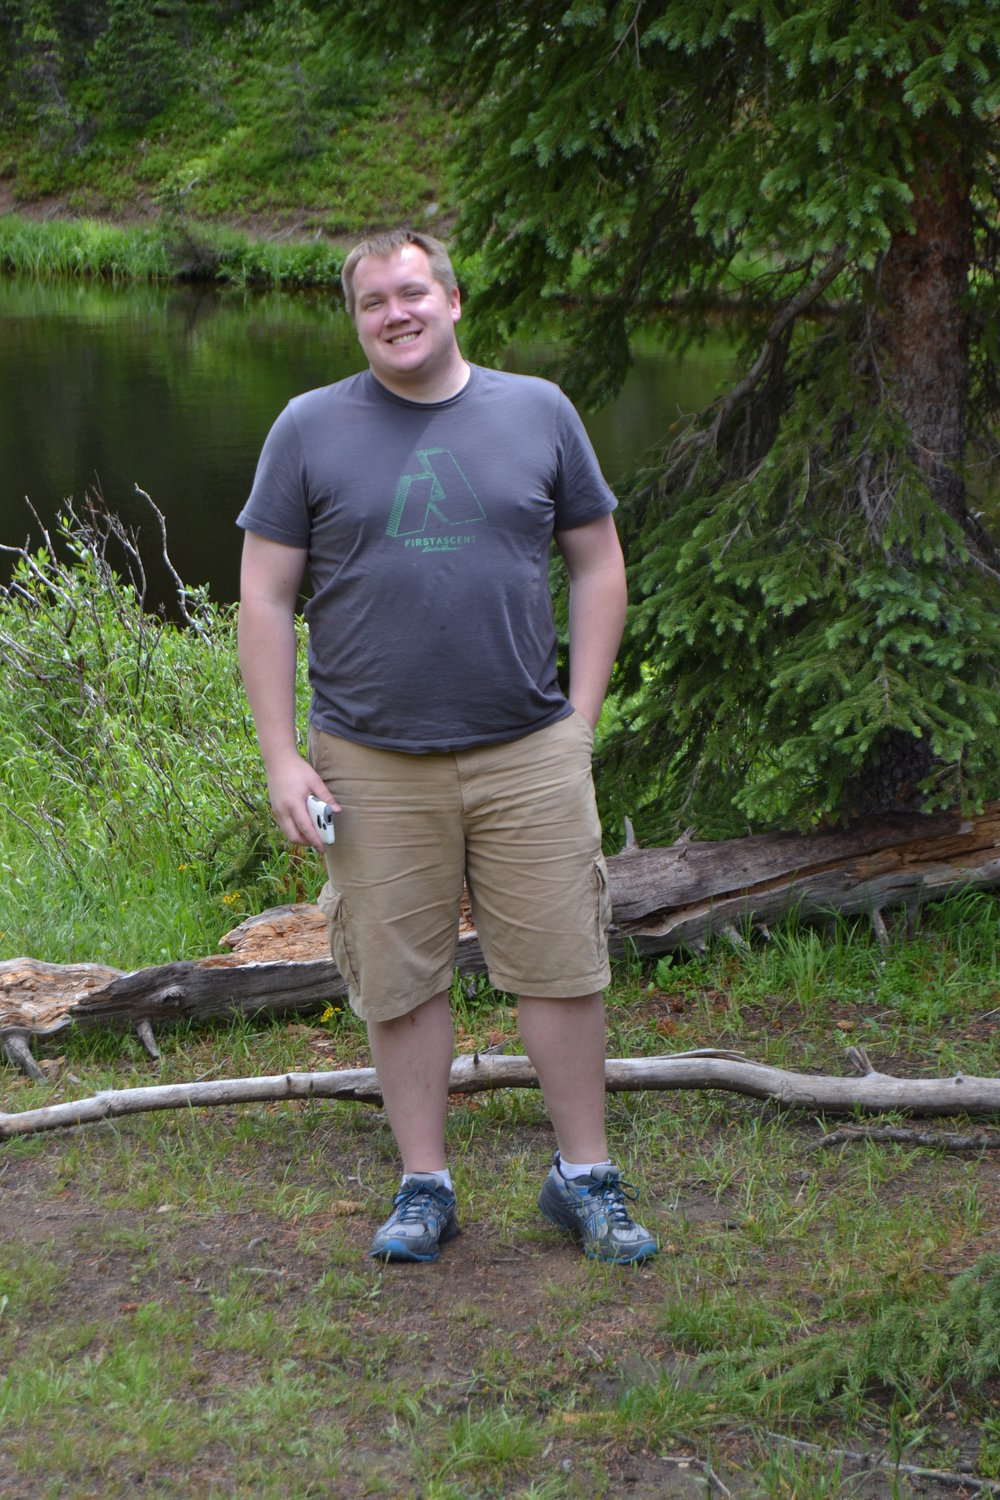 August 2014 - We took a trip to Rocky Mountain National Park and I'm puffy again.